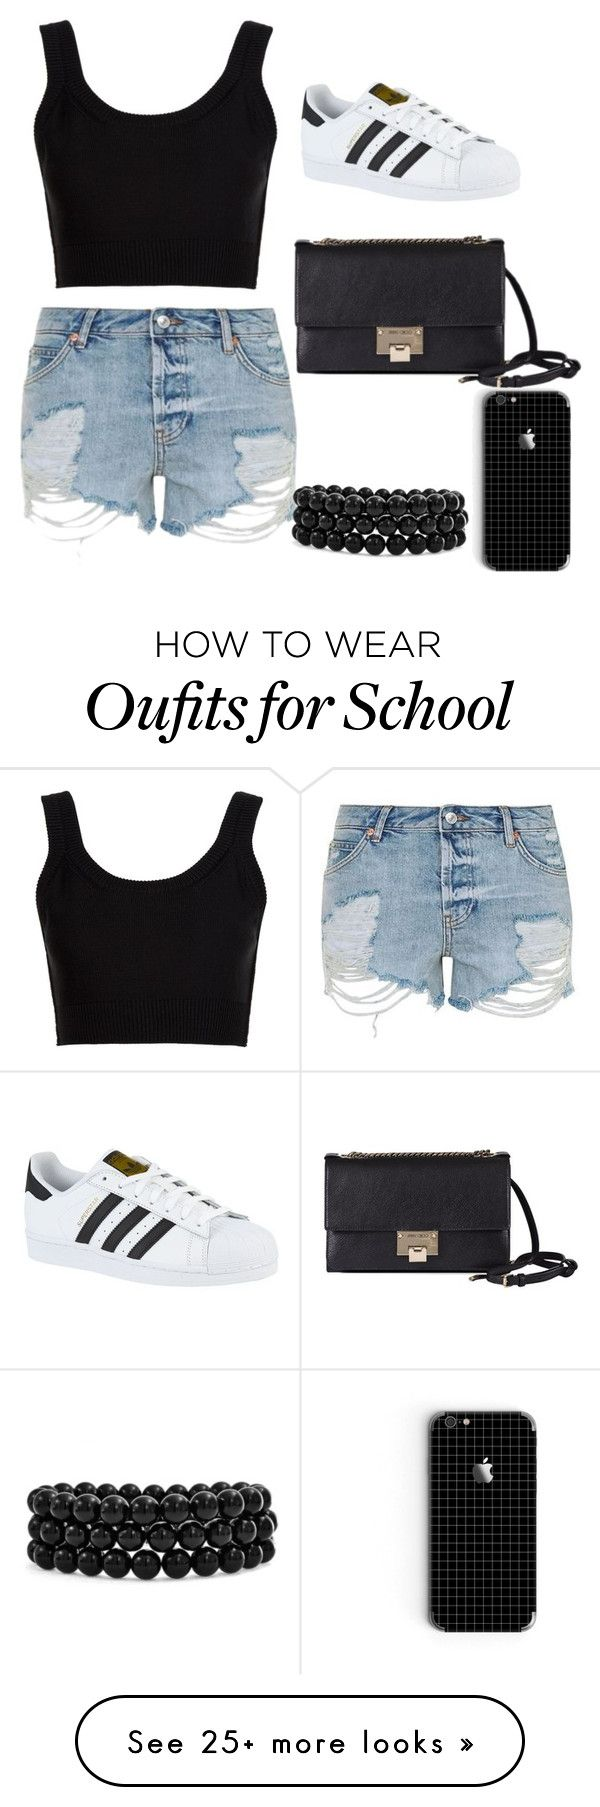 """back to school"" by fatimtasayee on Polyvore featuring Topshop, Calvin Klein Collection, adidas, Jimmy Choo and Bling Jewelry"